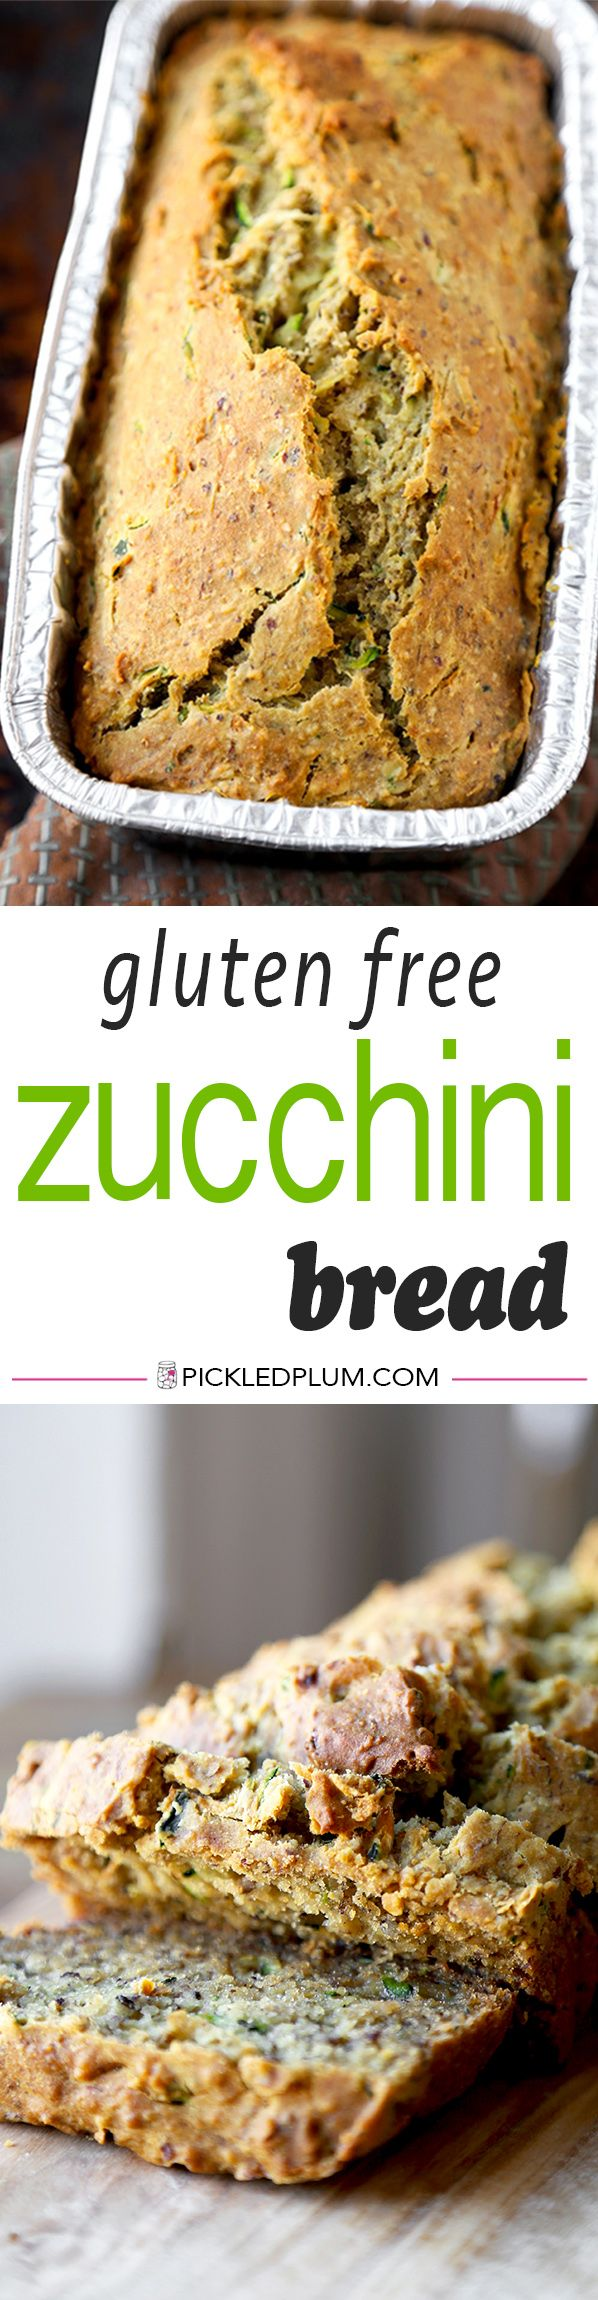 Gluten Free Zucchini Bread - This is an easy recipe for Gluten Free Zucchini Bread with a honey orange yogurt sauce that's the perfect balance between sweet and sour! We like this for Easter Brunch! Gluten free, easy, recipe | pickledplum.com